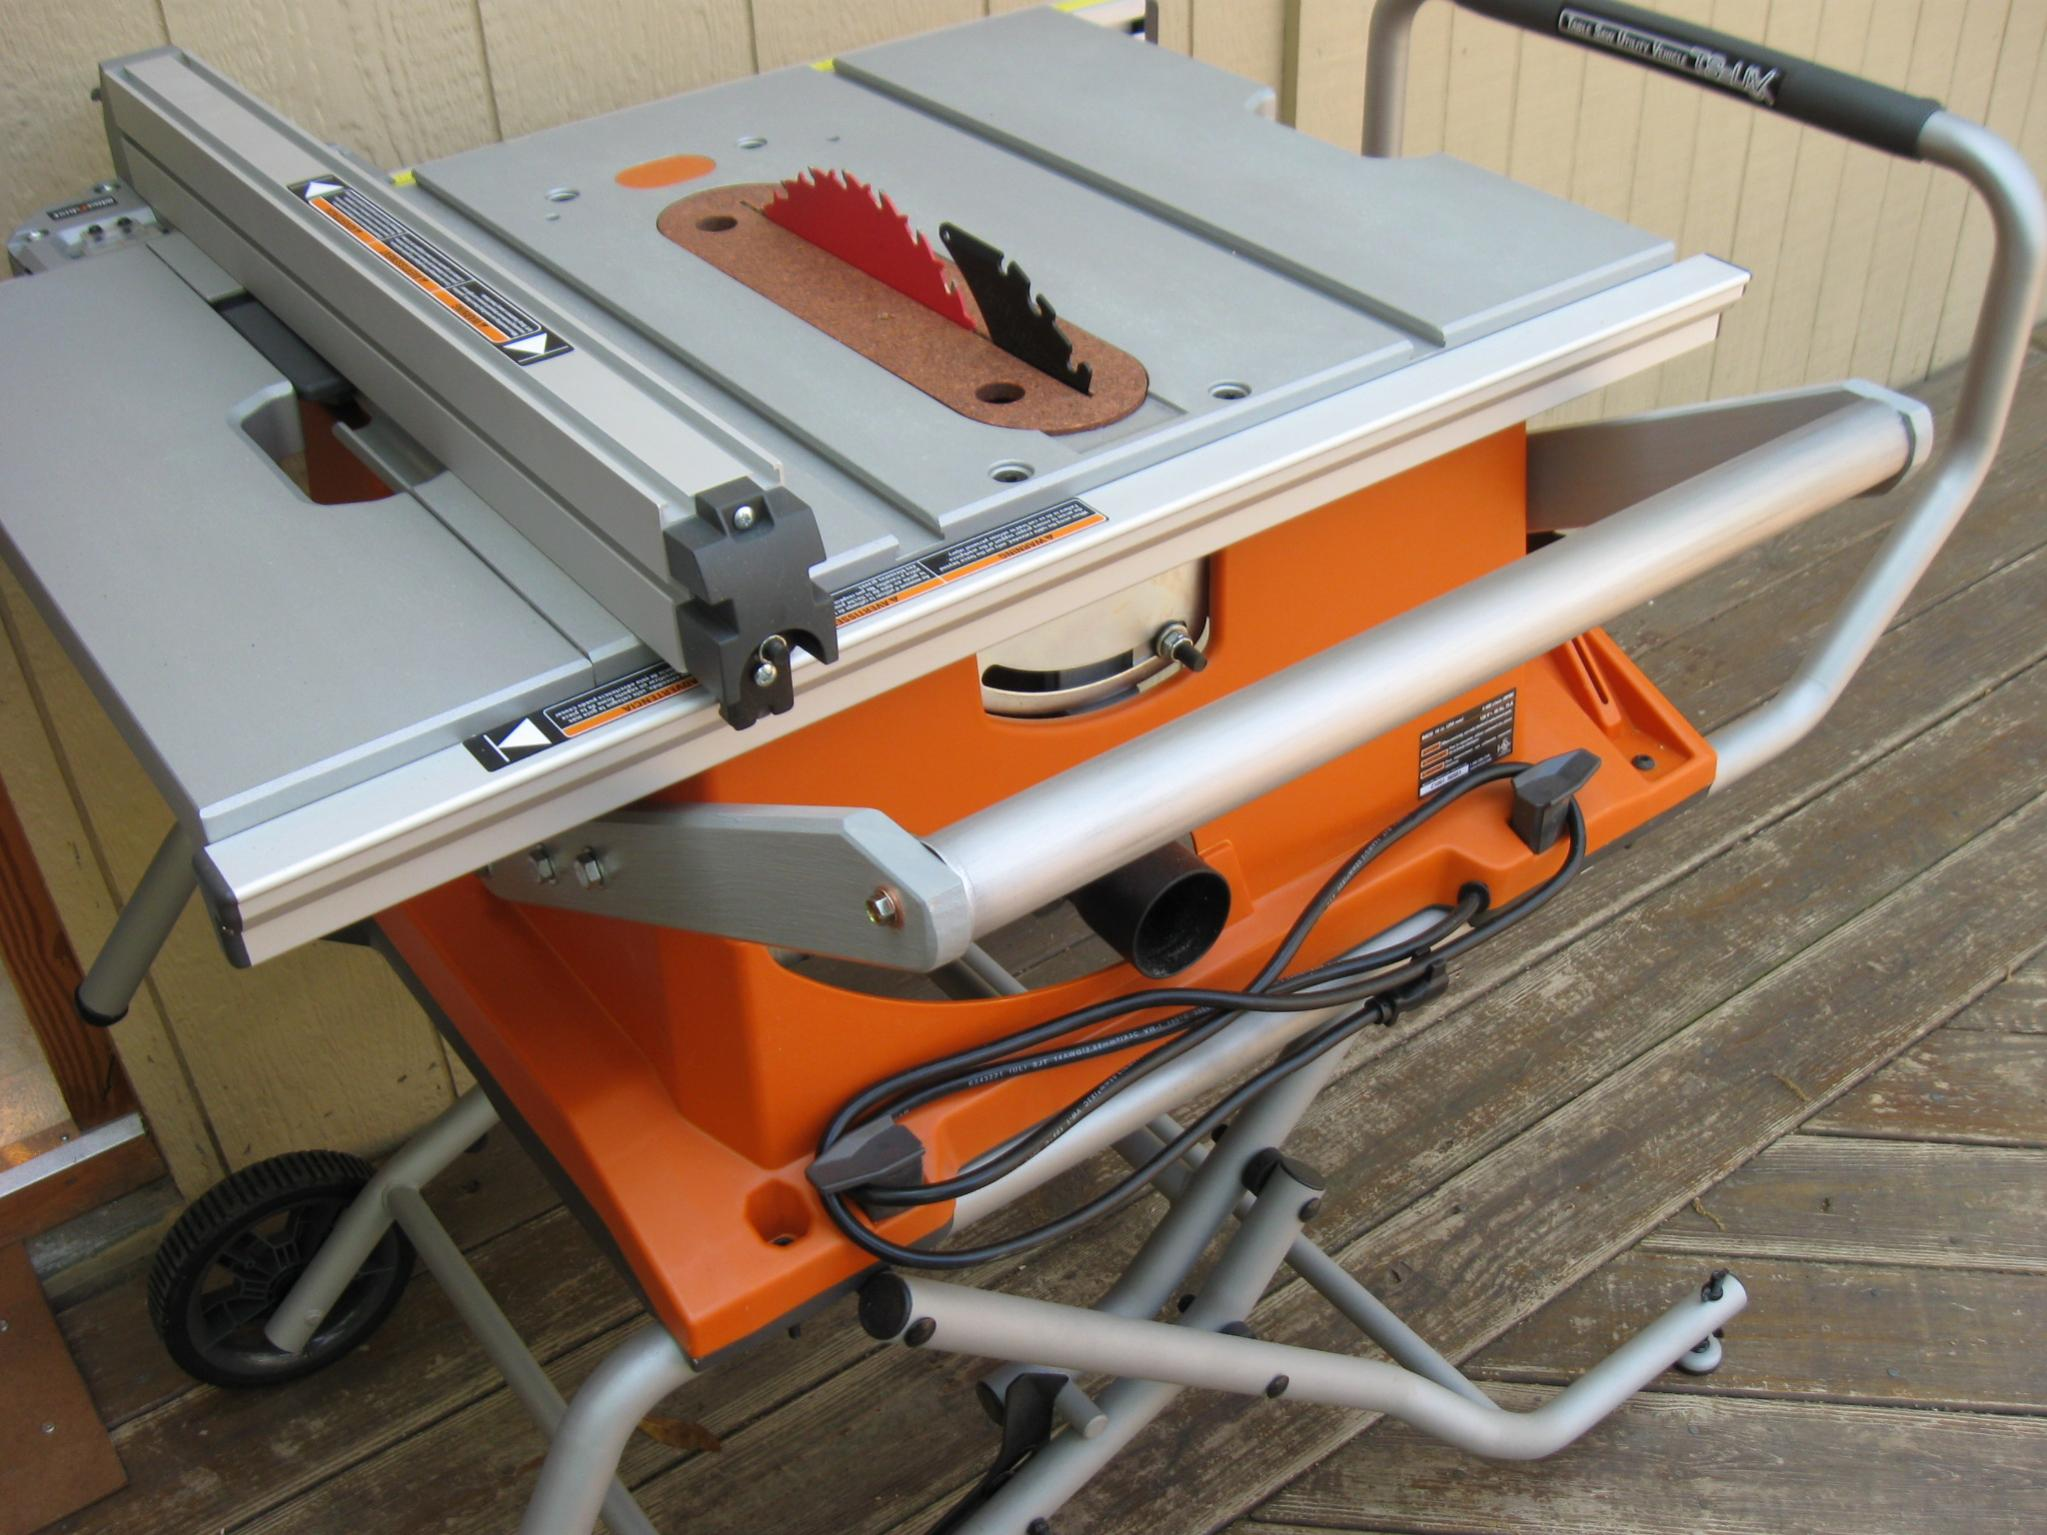 Router table insert for ridgid r4510 choice image wiring table and how to change the blade on a ridgid table saw choice image wiring r4510 jobsite saw greentooth Image collections